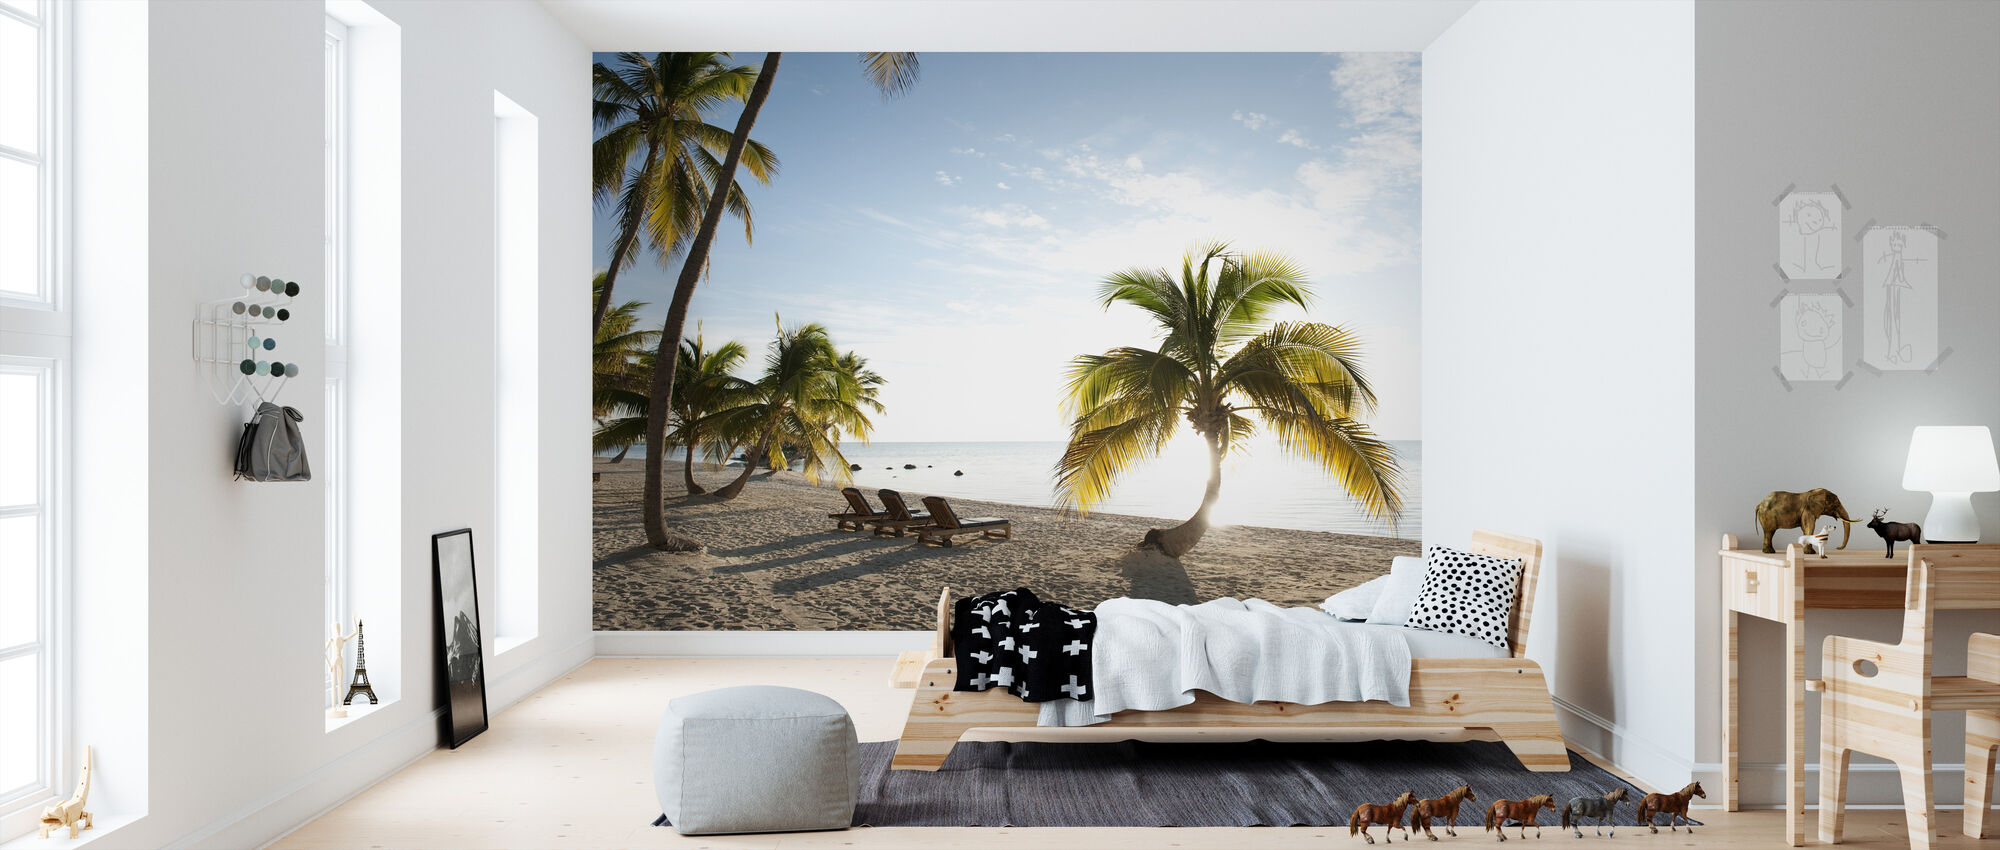 Beach in Islamorada in Florida Keys, USA - Wallpaper - Kids Room